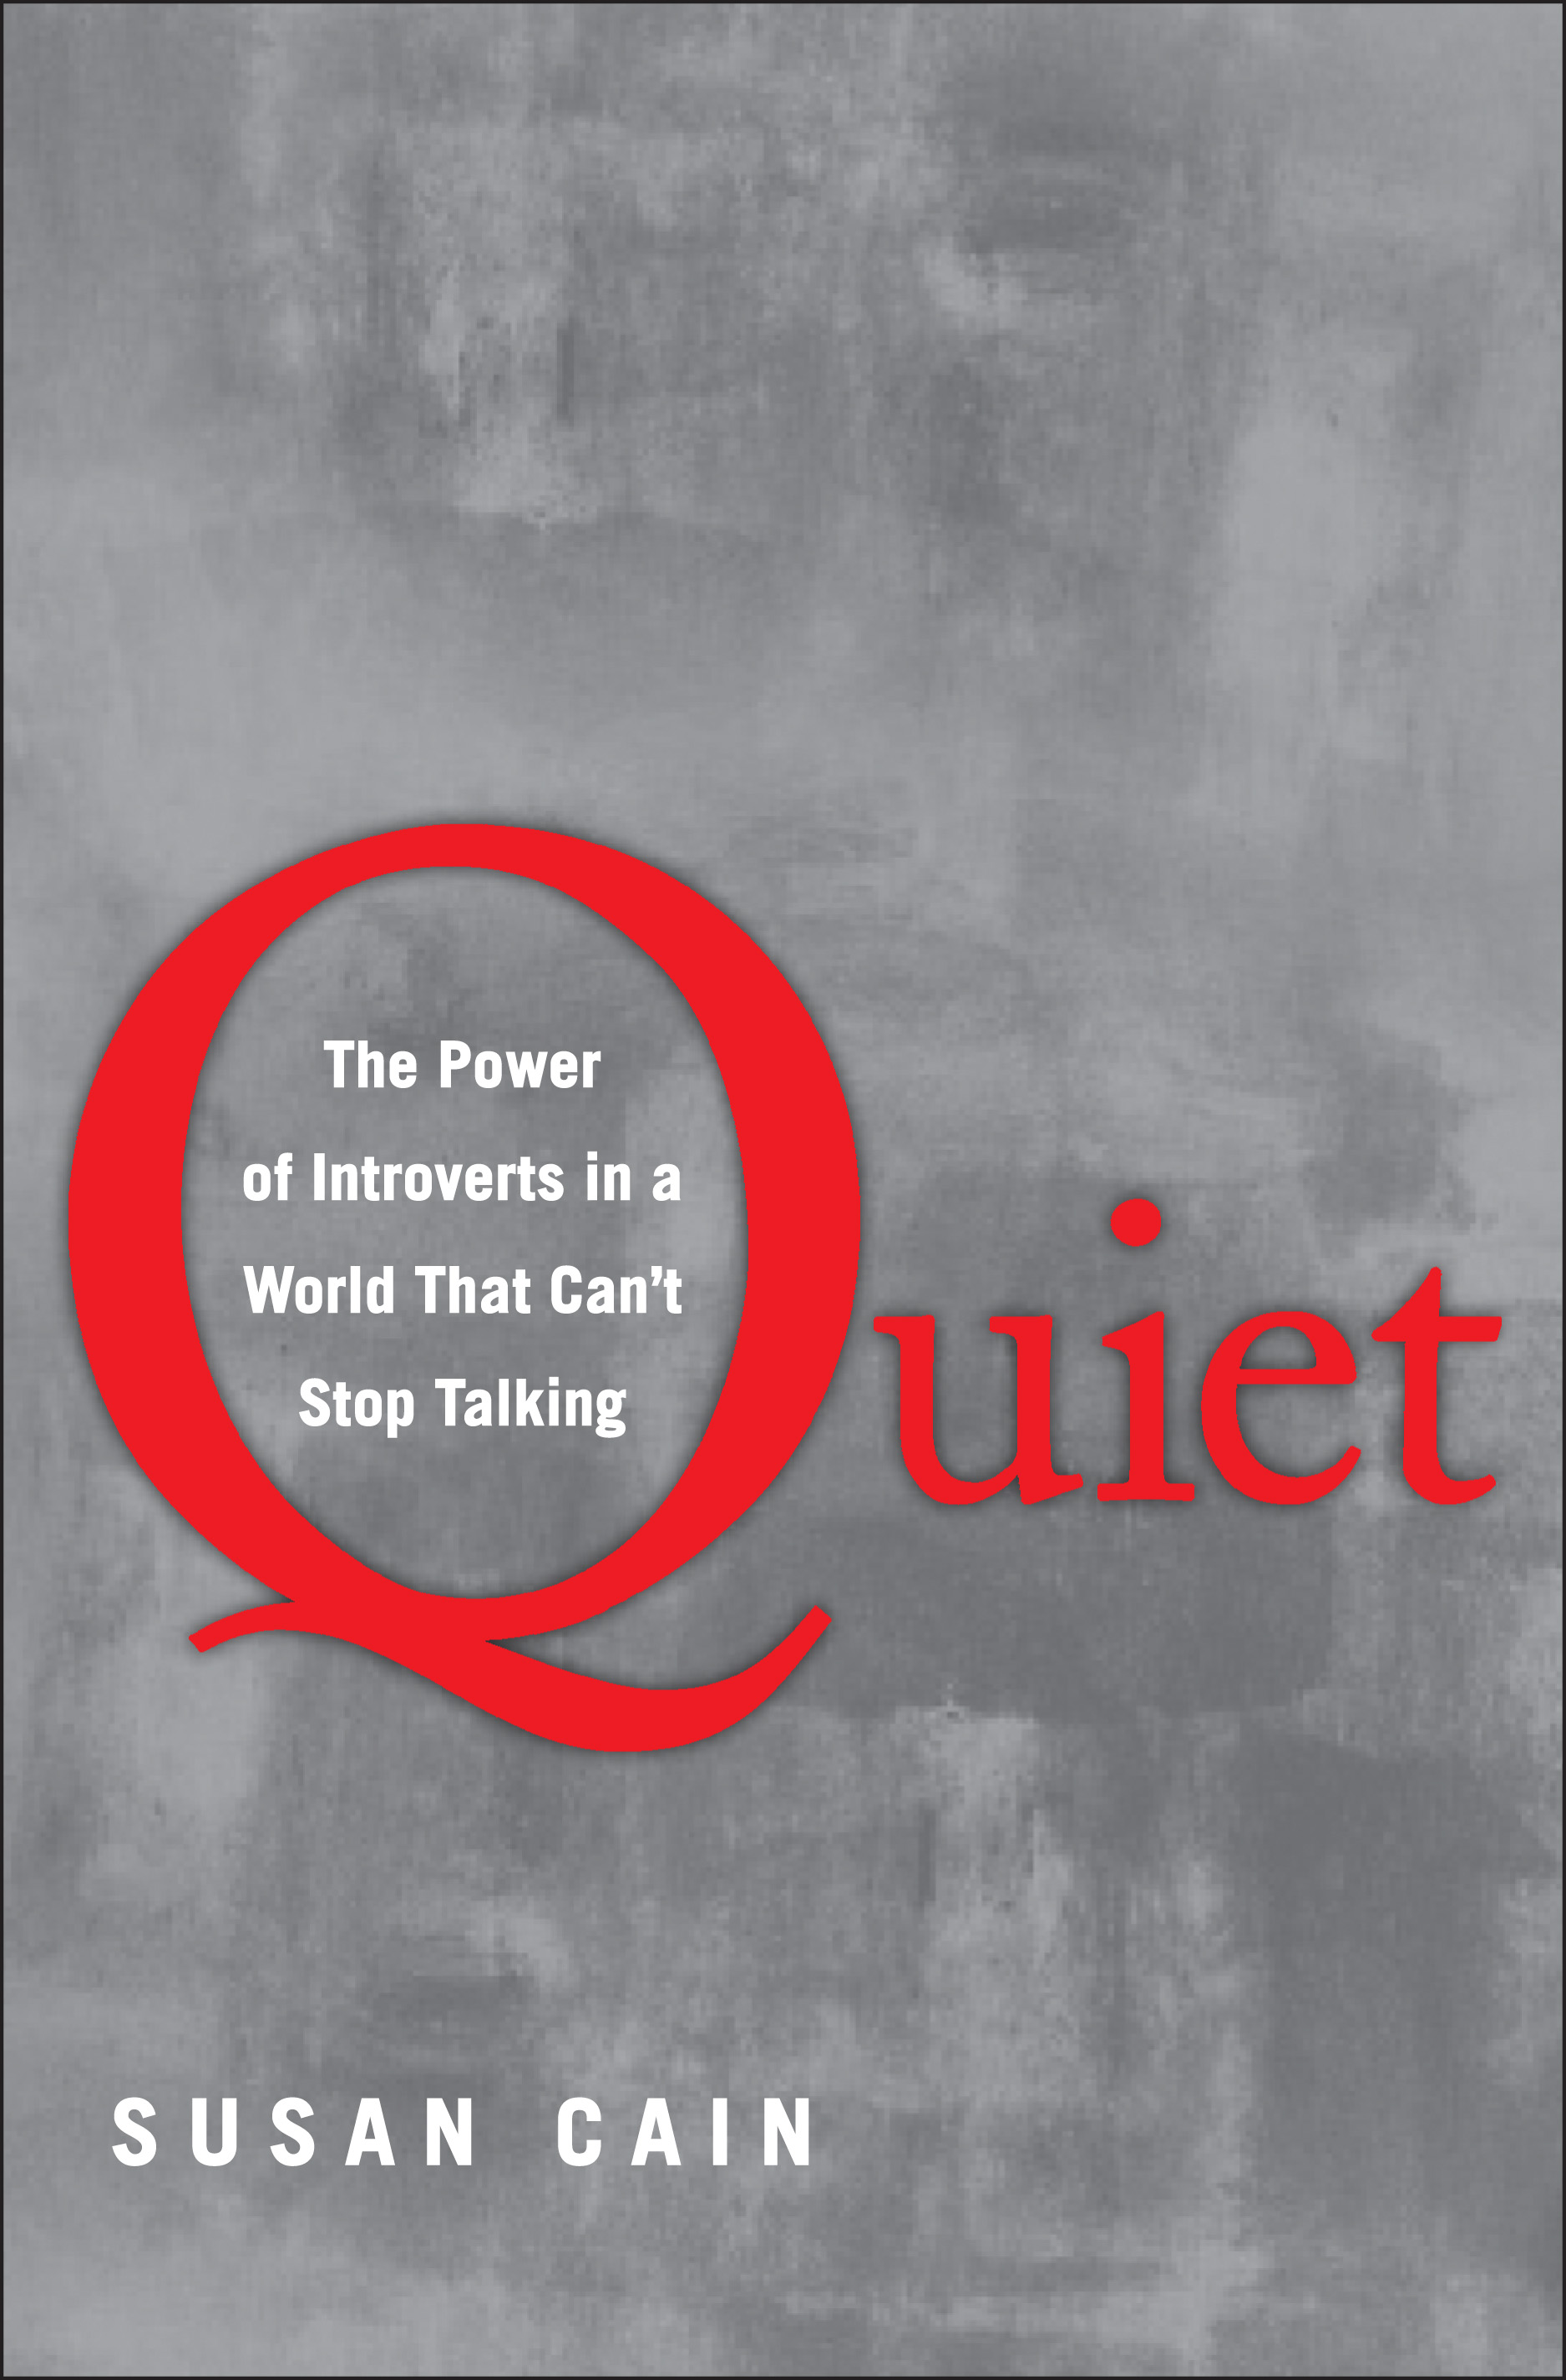 A Salute to Introverts (including the one within)